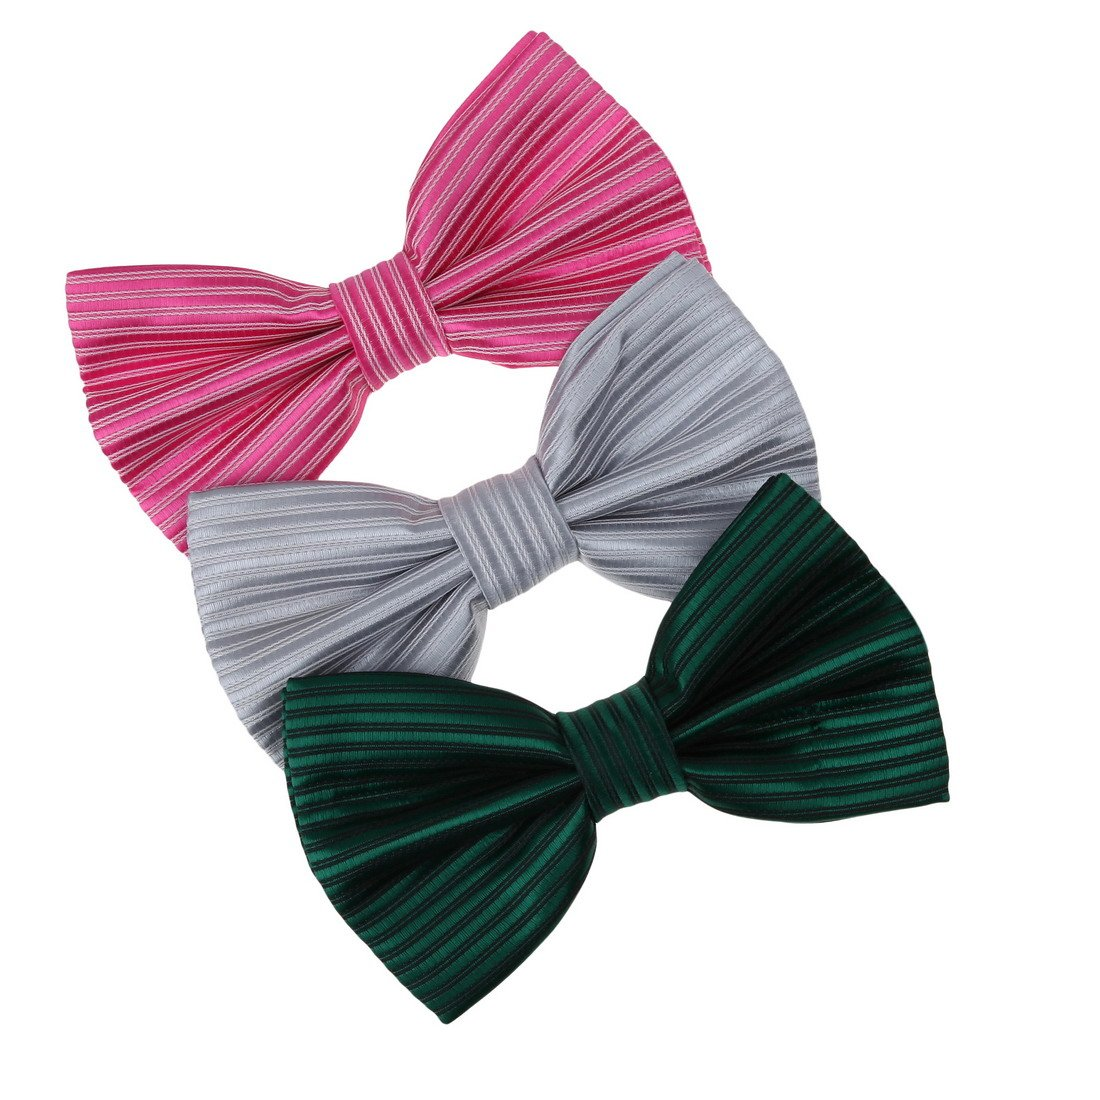 DBE0211 Friendship Style Bow Ties Microfiber Excellent Series 3 Pack Bow Ties Set by Dan Smith